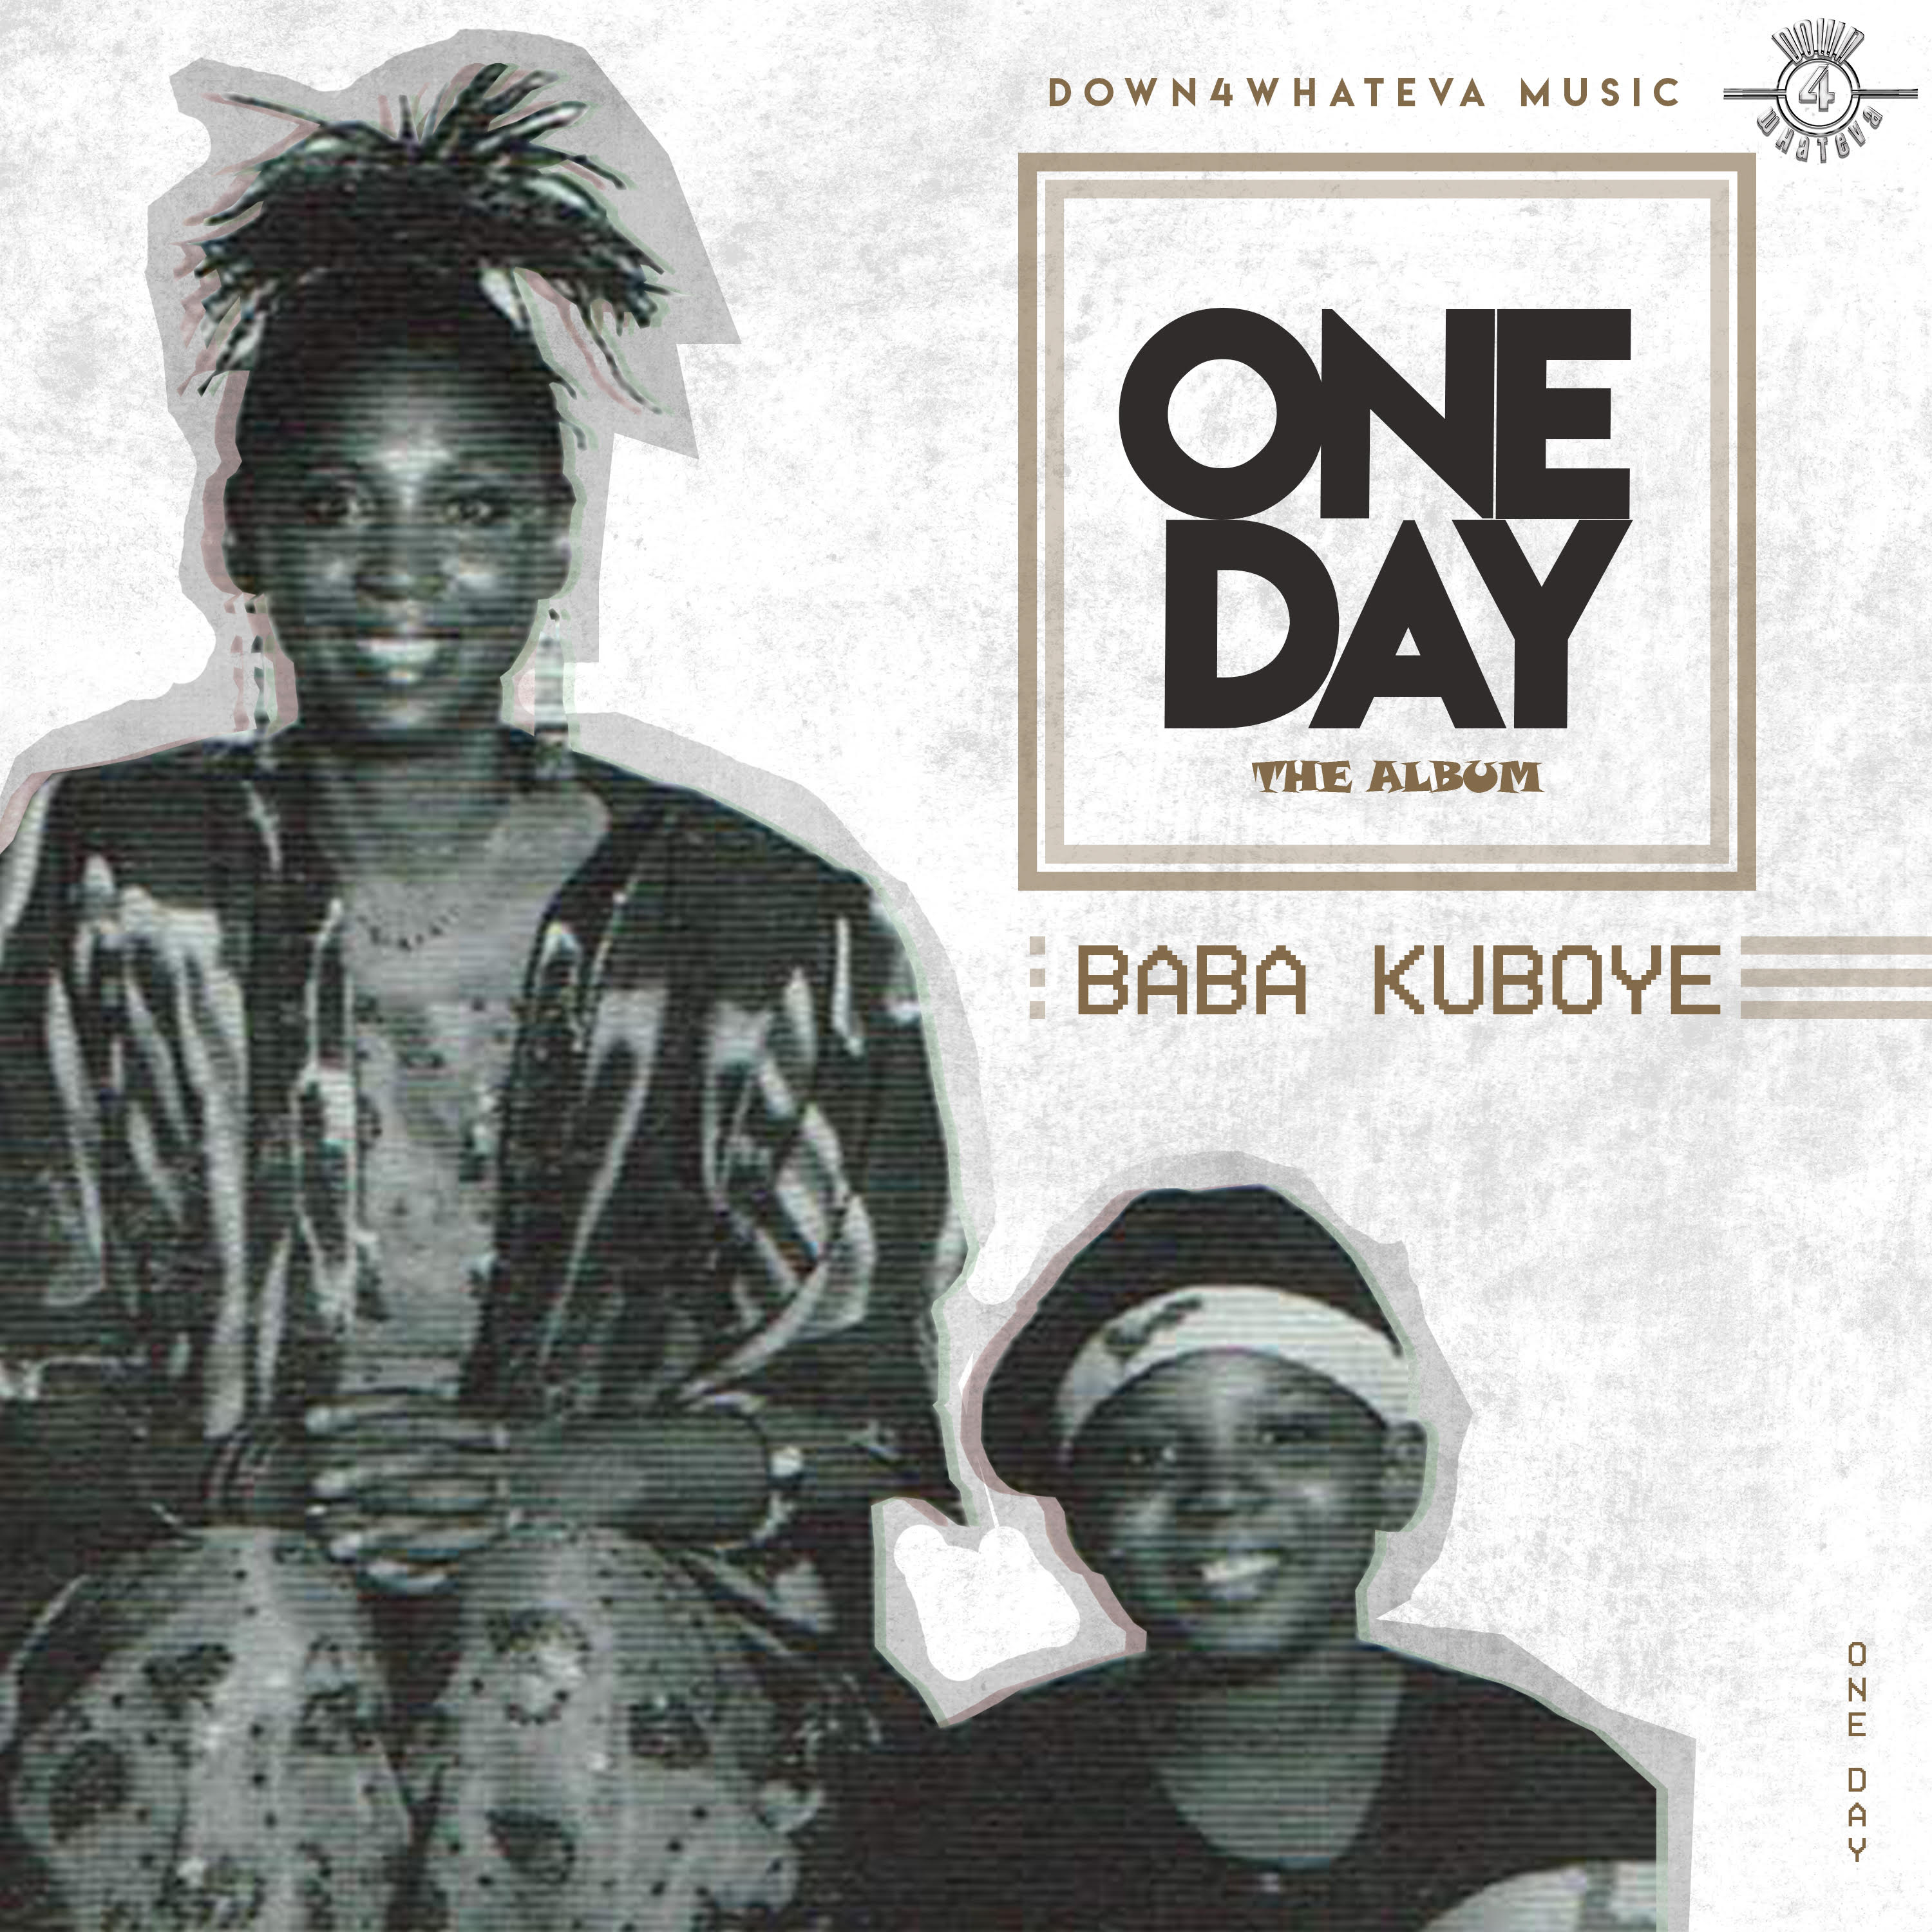 Baba Kuboye – One Day